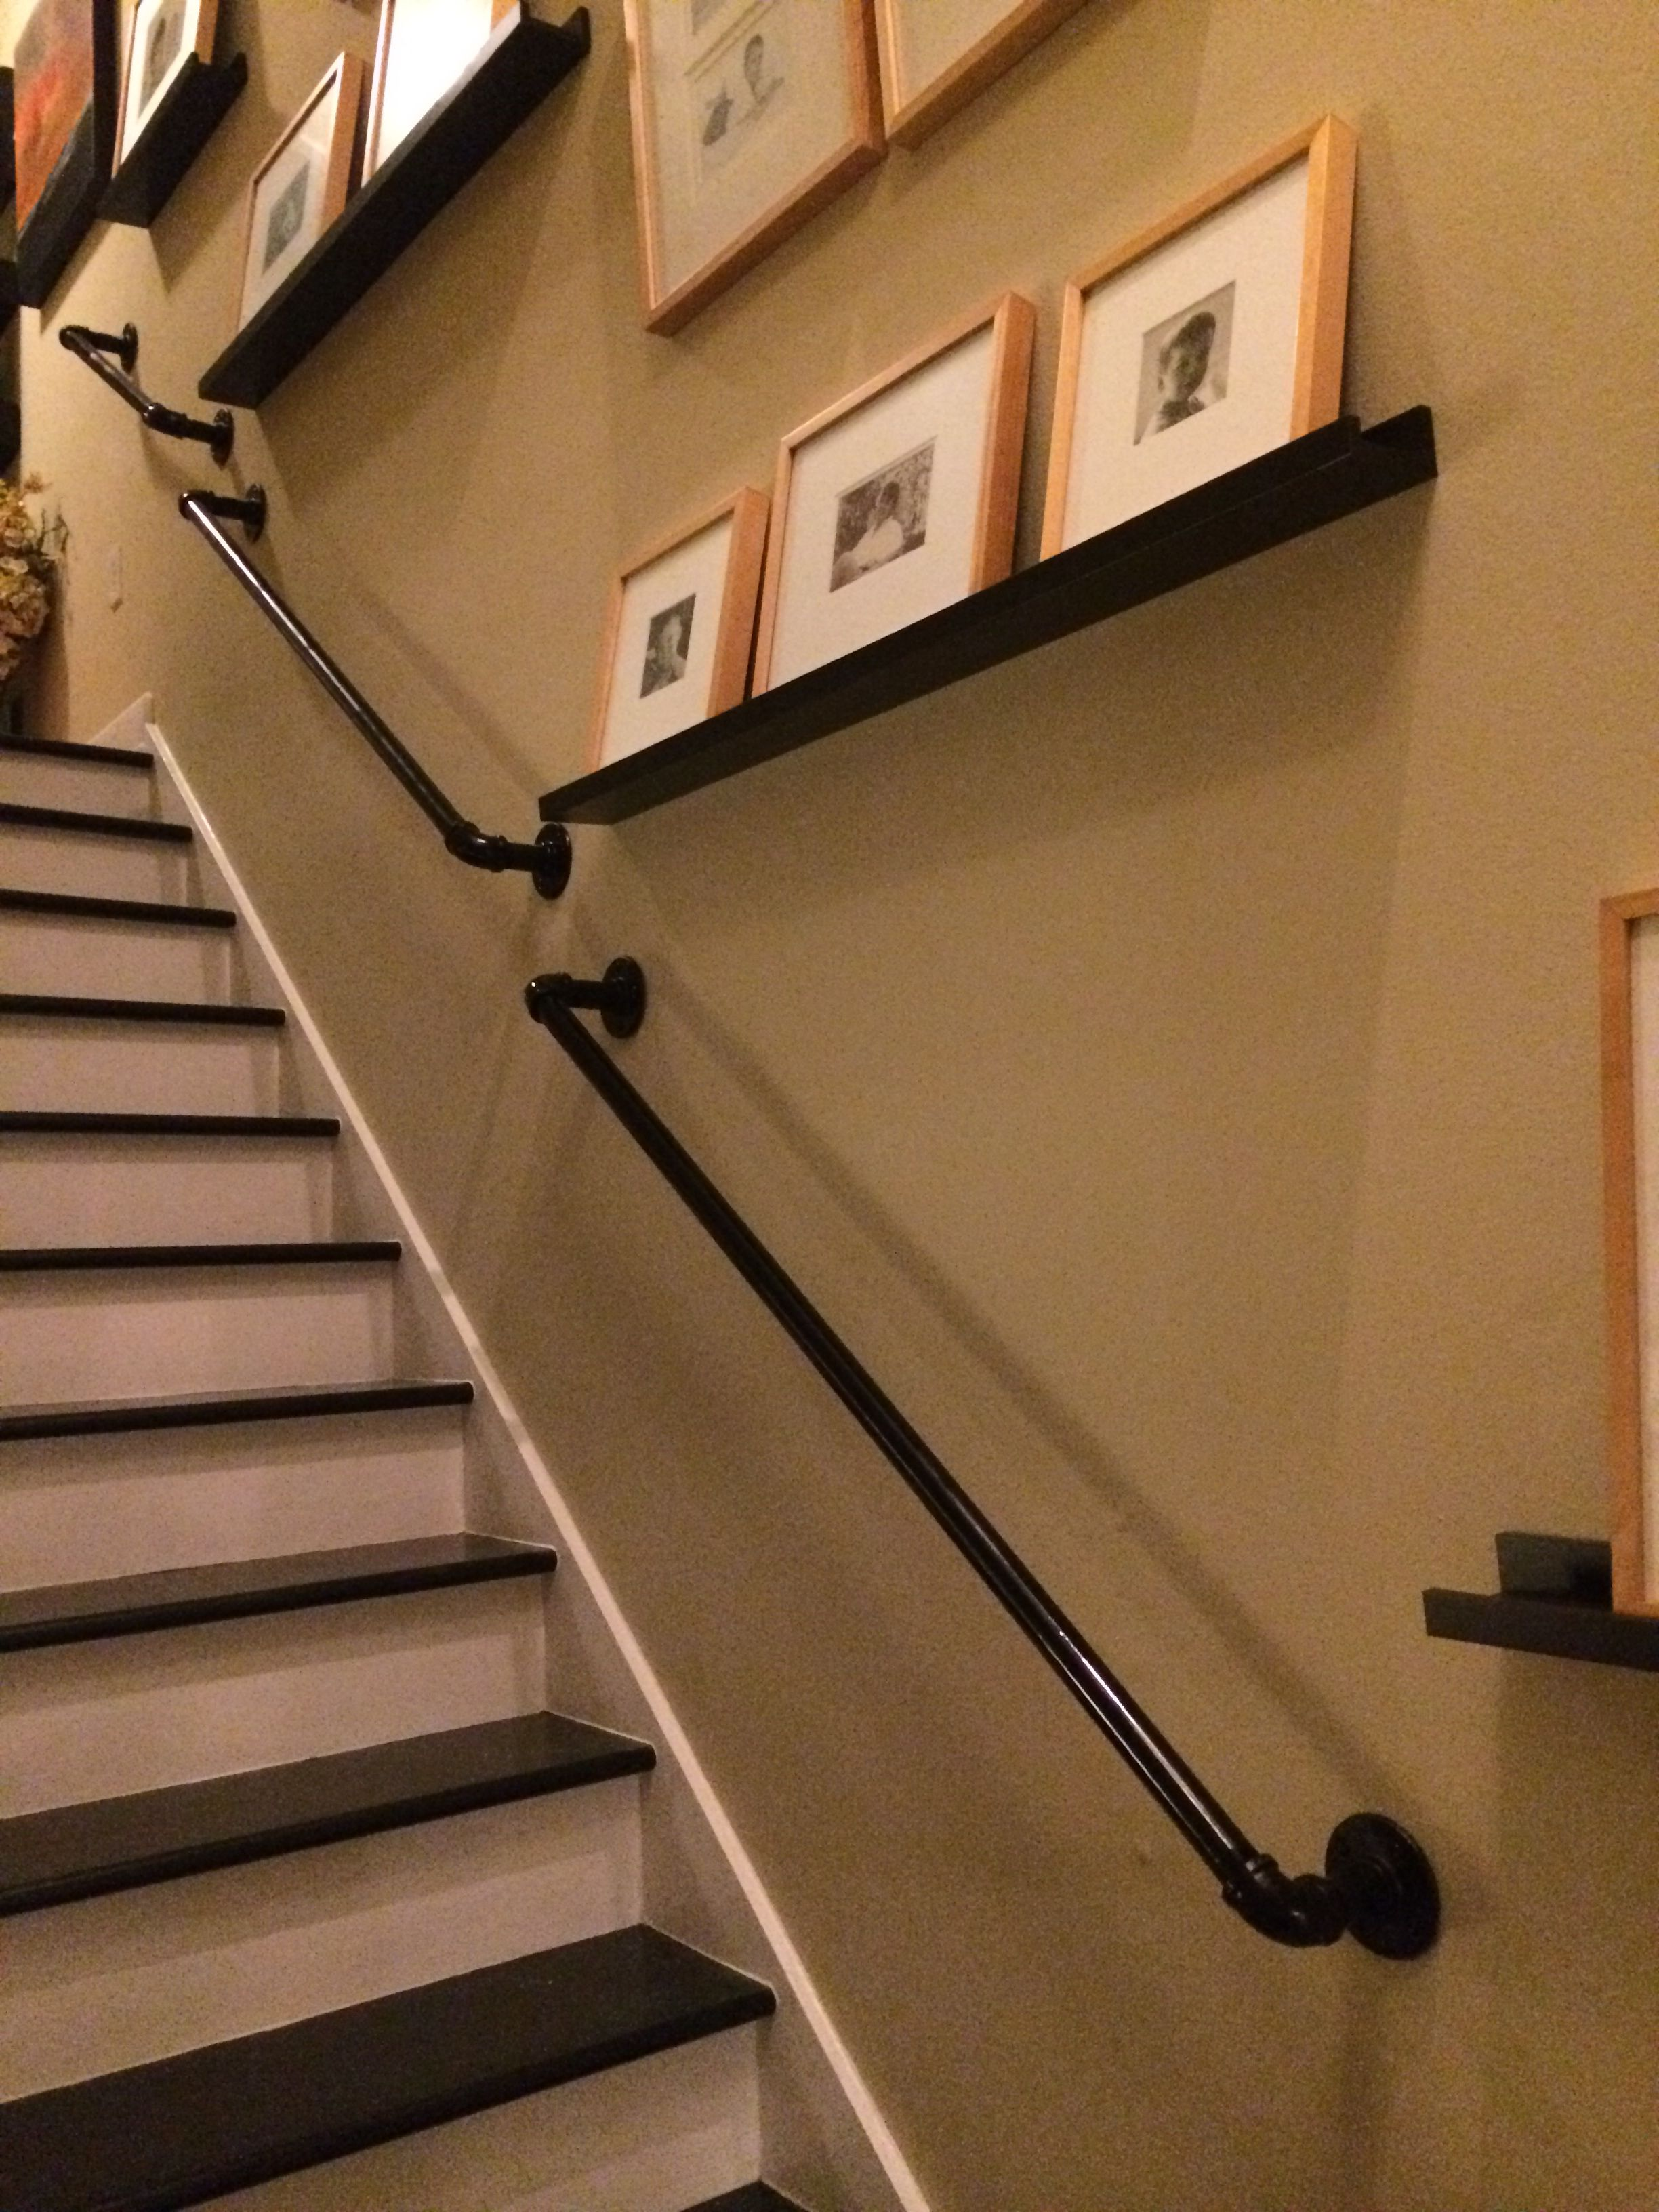 Pipe As A Railing, Finished Product. DIY Railing For Stairs Using Pipe,  Elbow Joints, Nipples And Metal Flanges Mounted Directly To Wall.